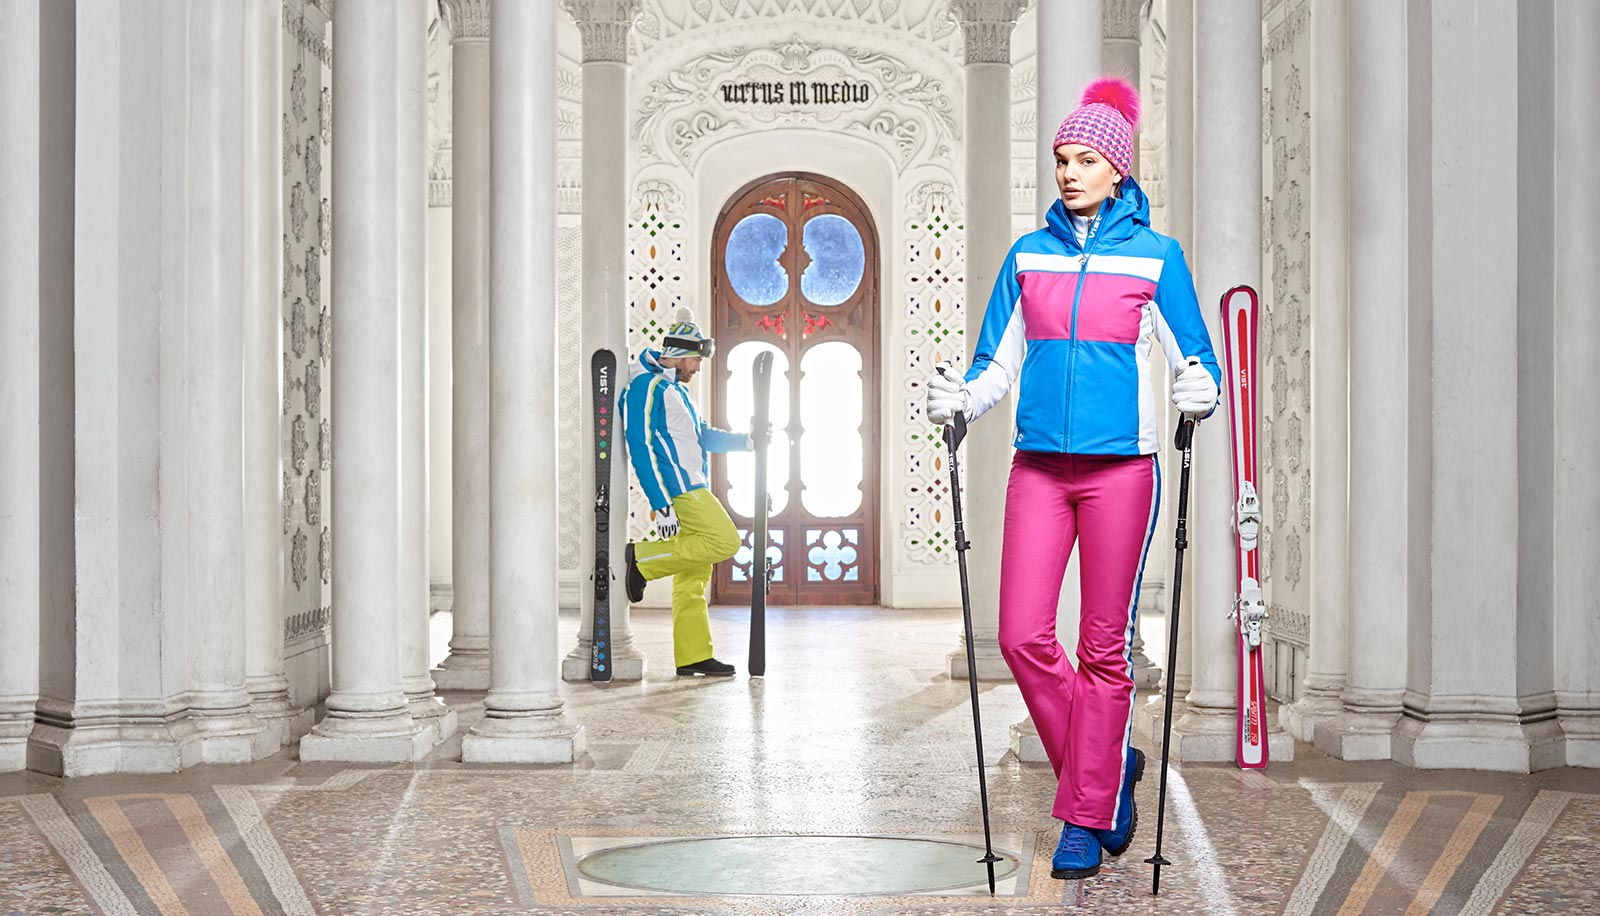 A man and a woman with skis in a Middle Eastern looking hall